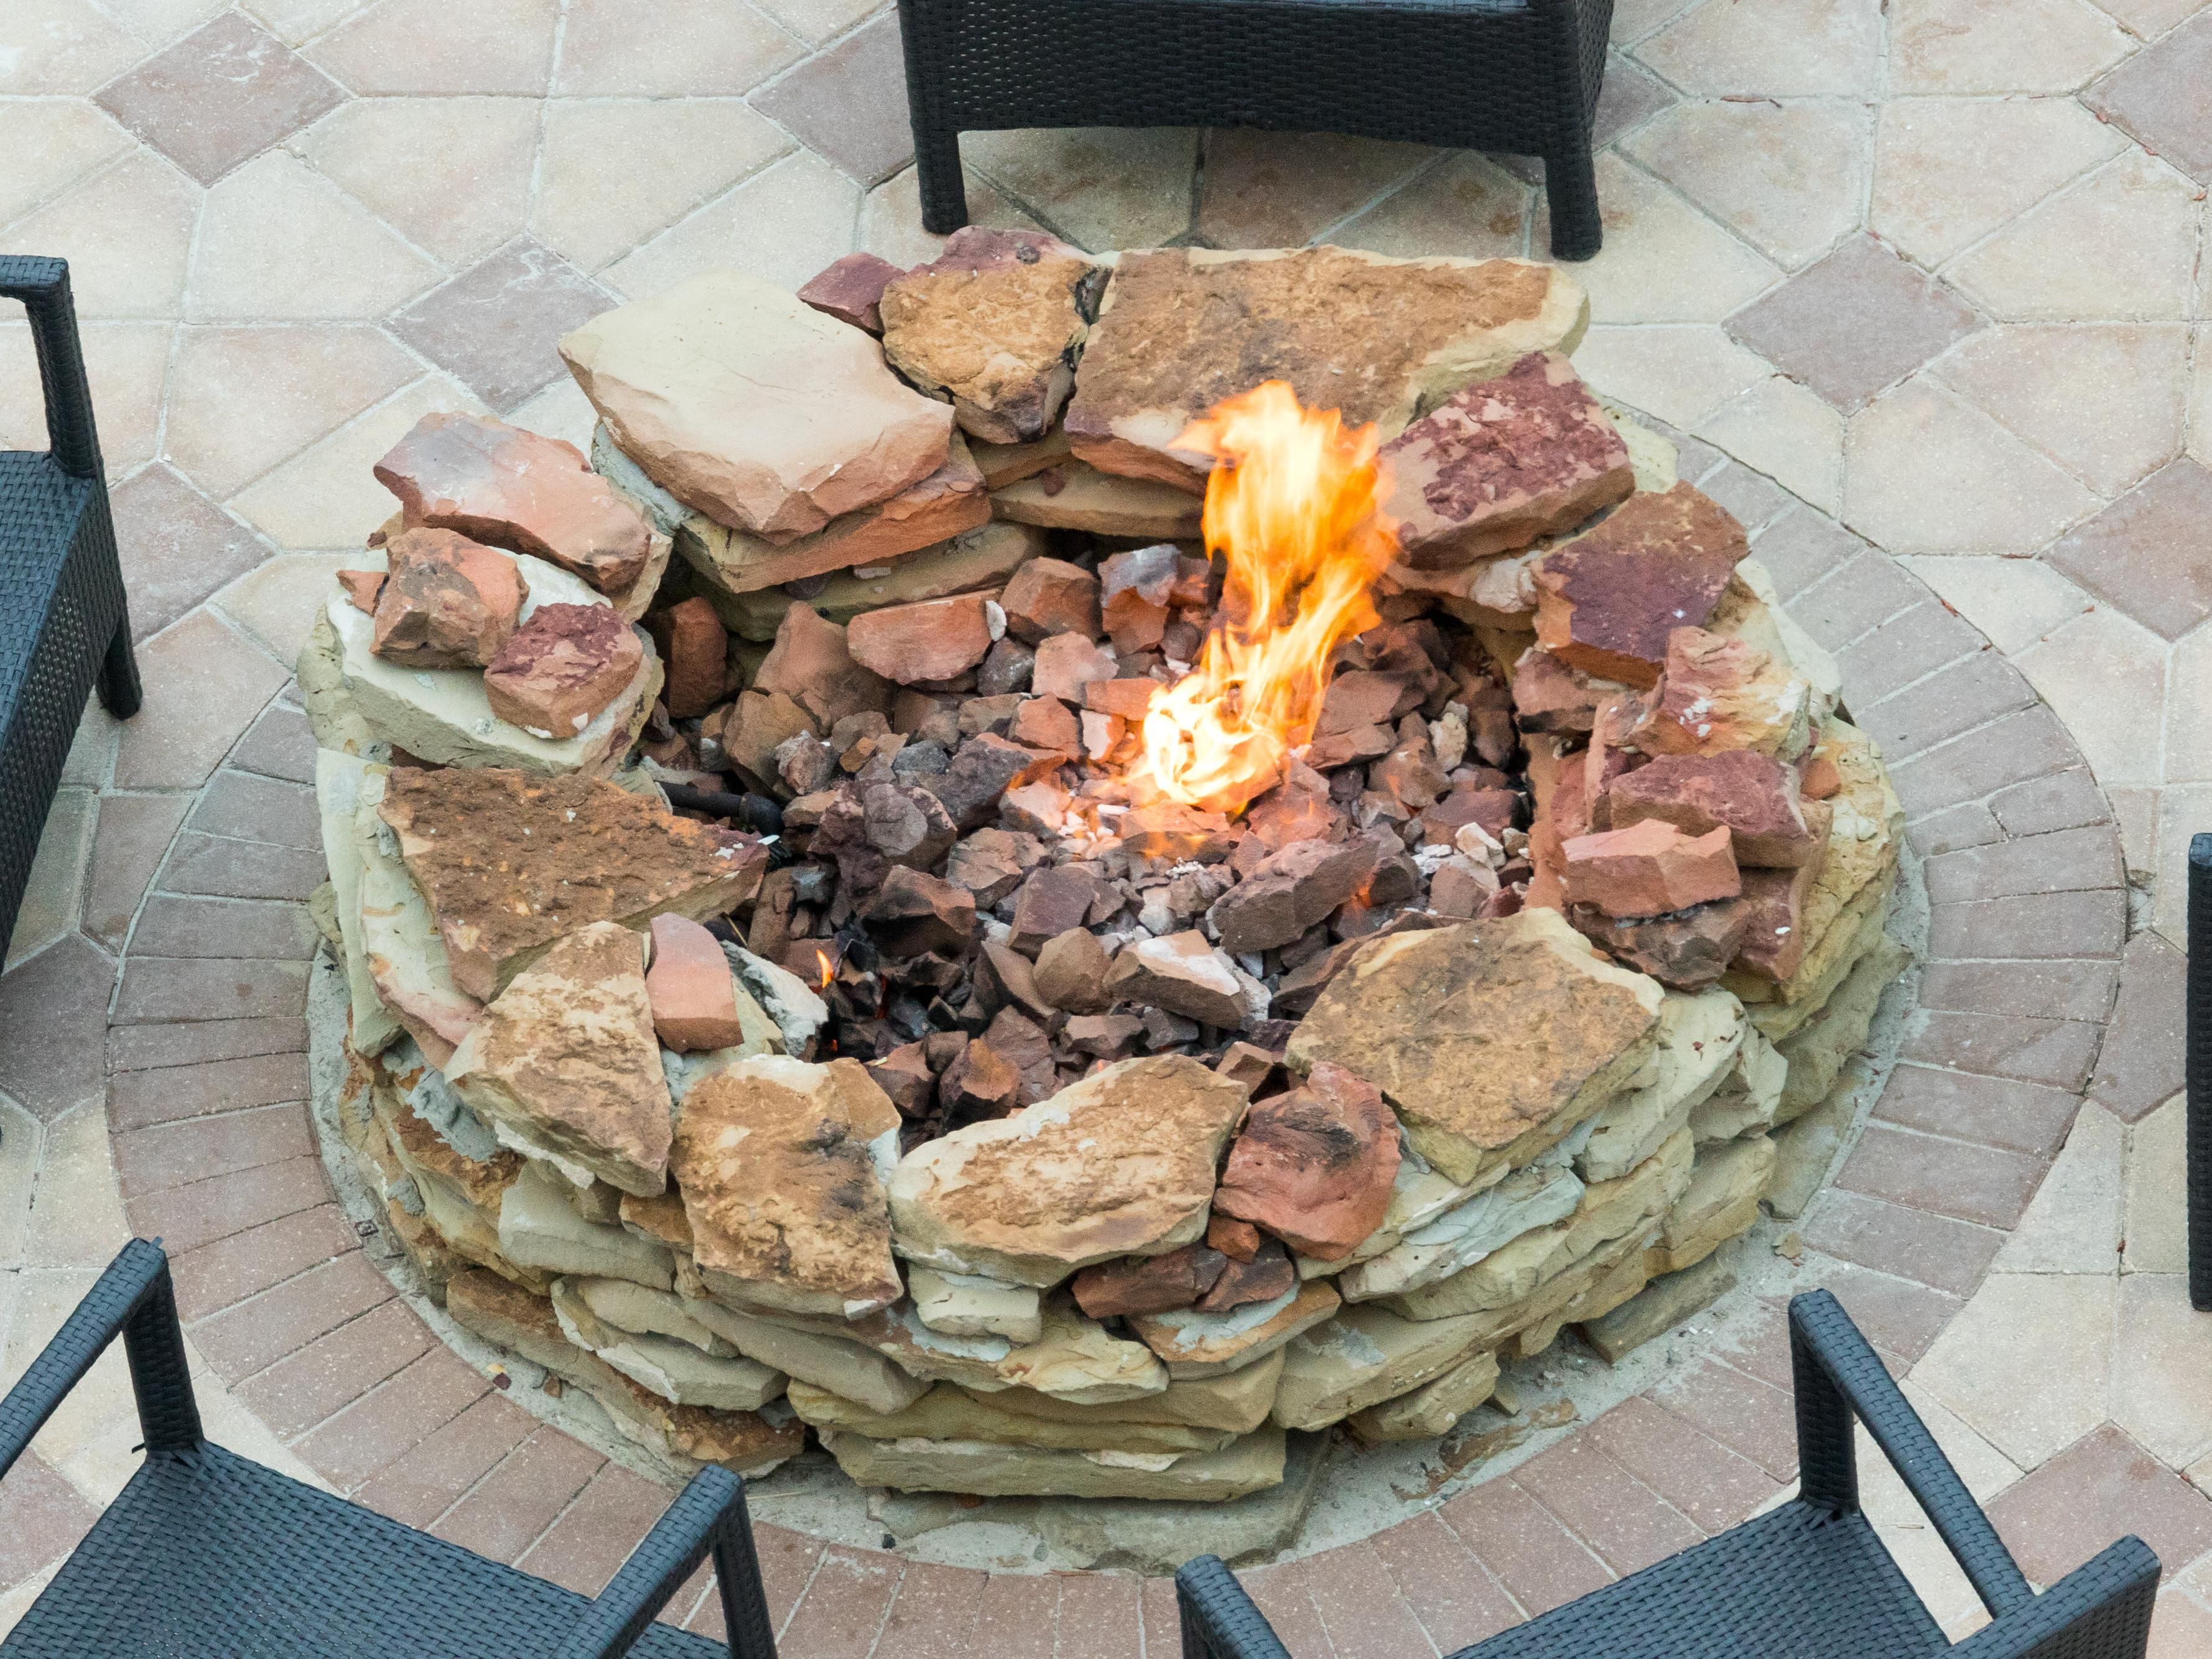 Two Ocean Front Fire Pits